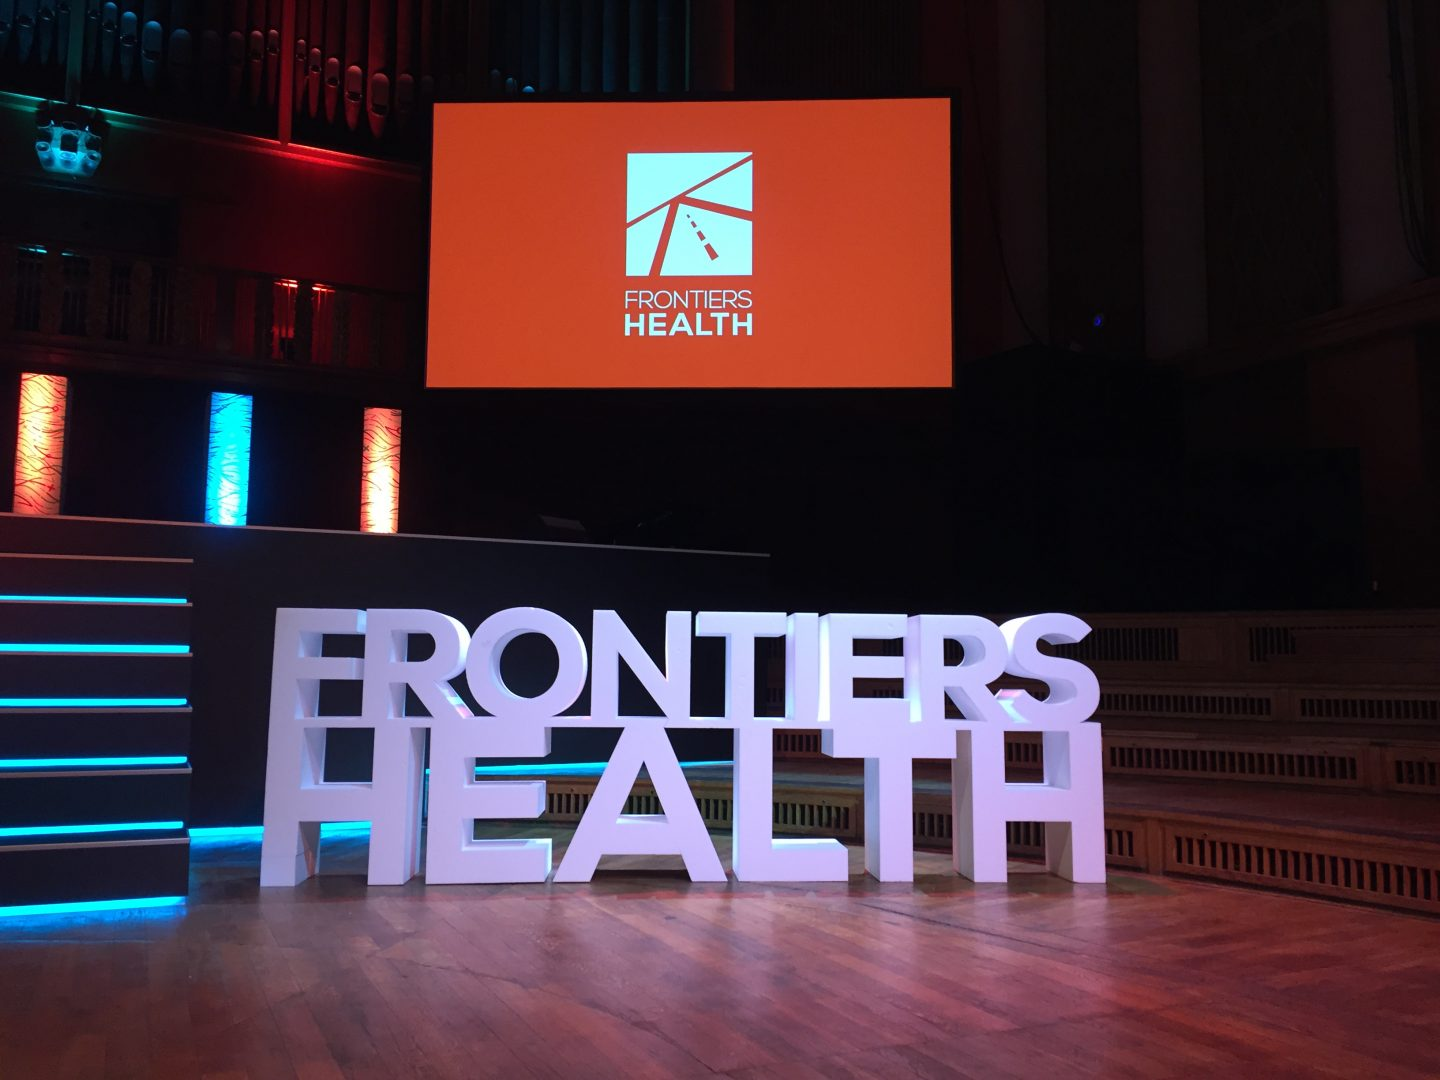 Live coverage from Frontiers Health 2018